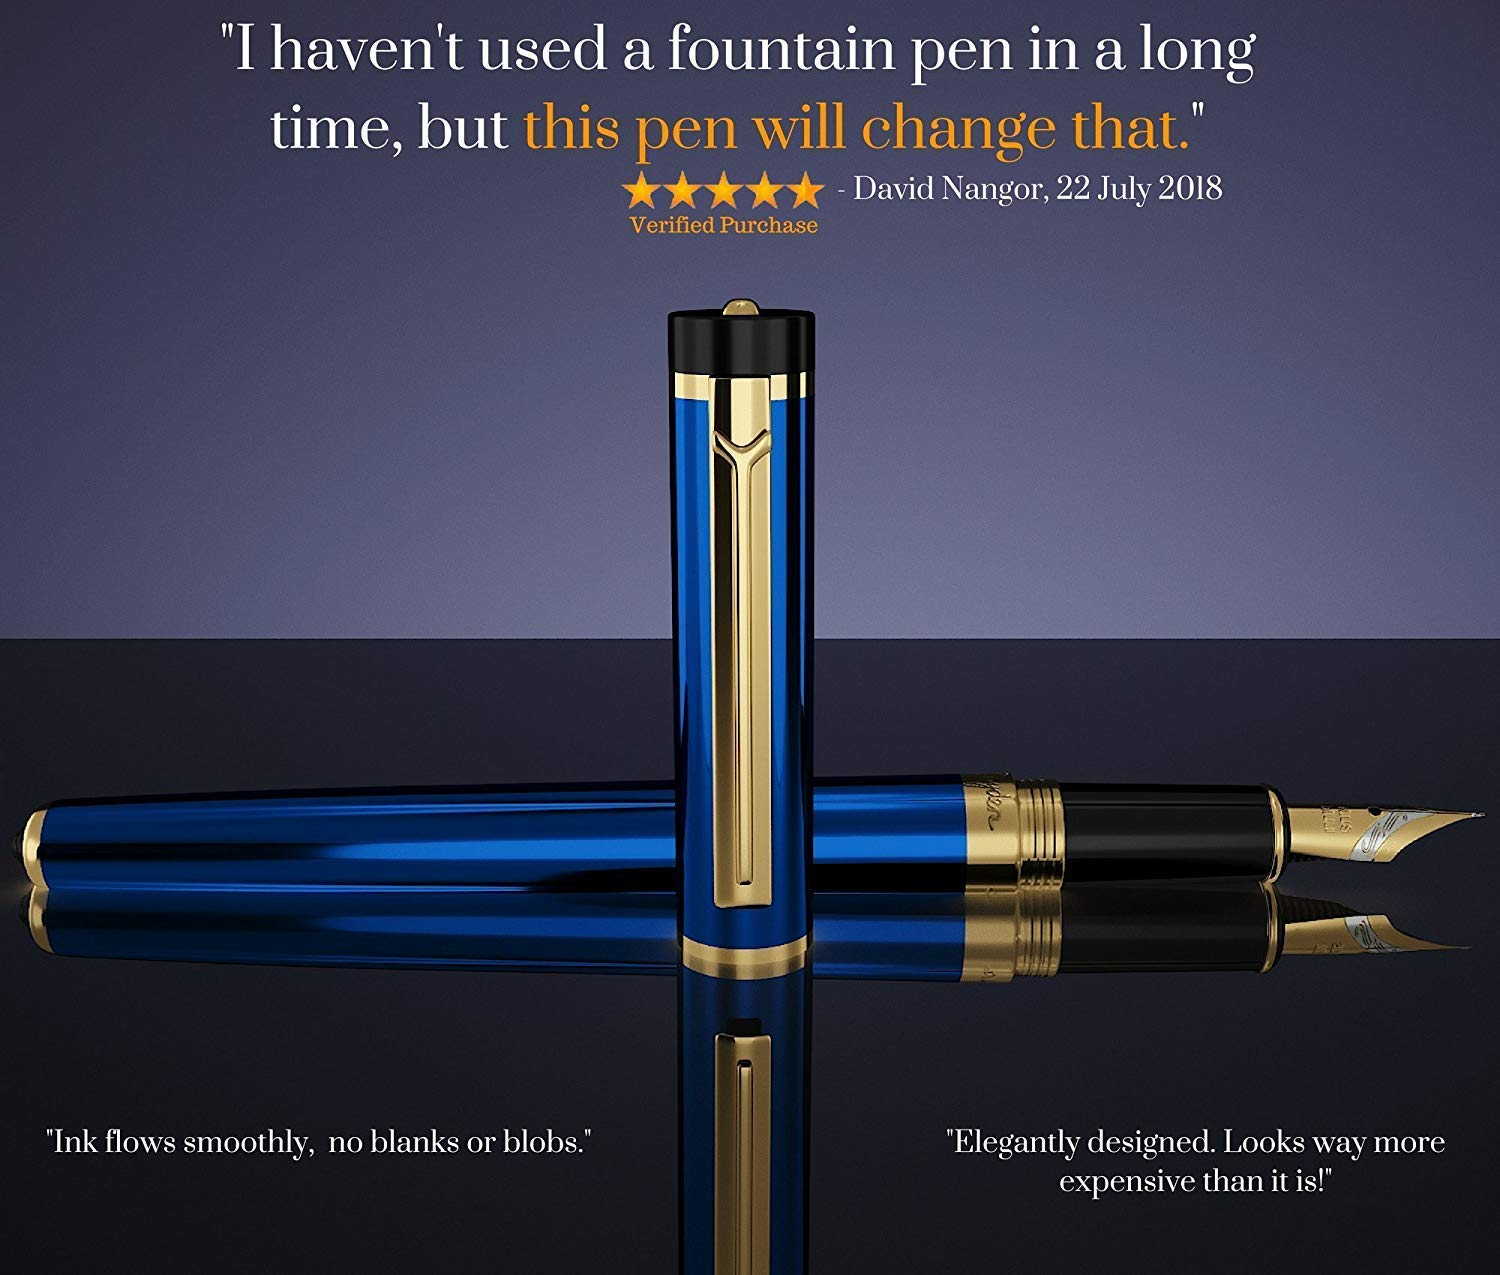 DRYDEN Luxury Fountain Pen [MYSTERIOUS BLUE] - BEST Fountain Pens Gift Set - Smooth Elegant Writing - Calligraphy - FREE Ink Refill Converter by Dryden Designs (Image #2)